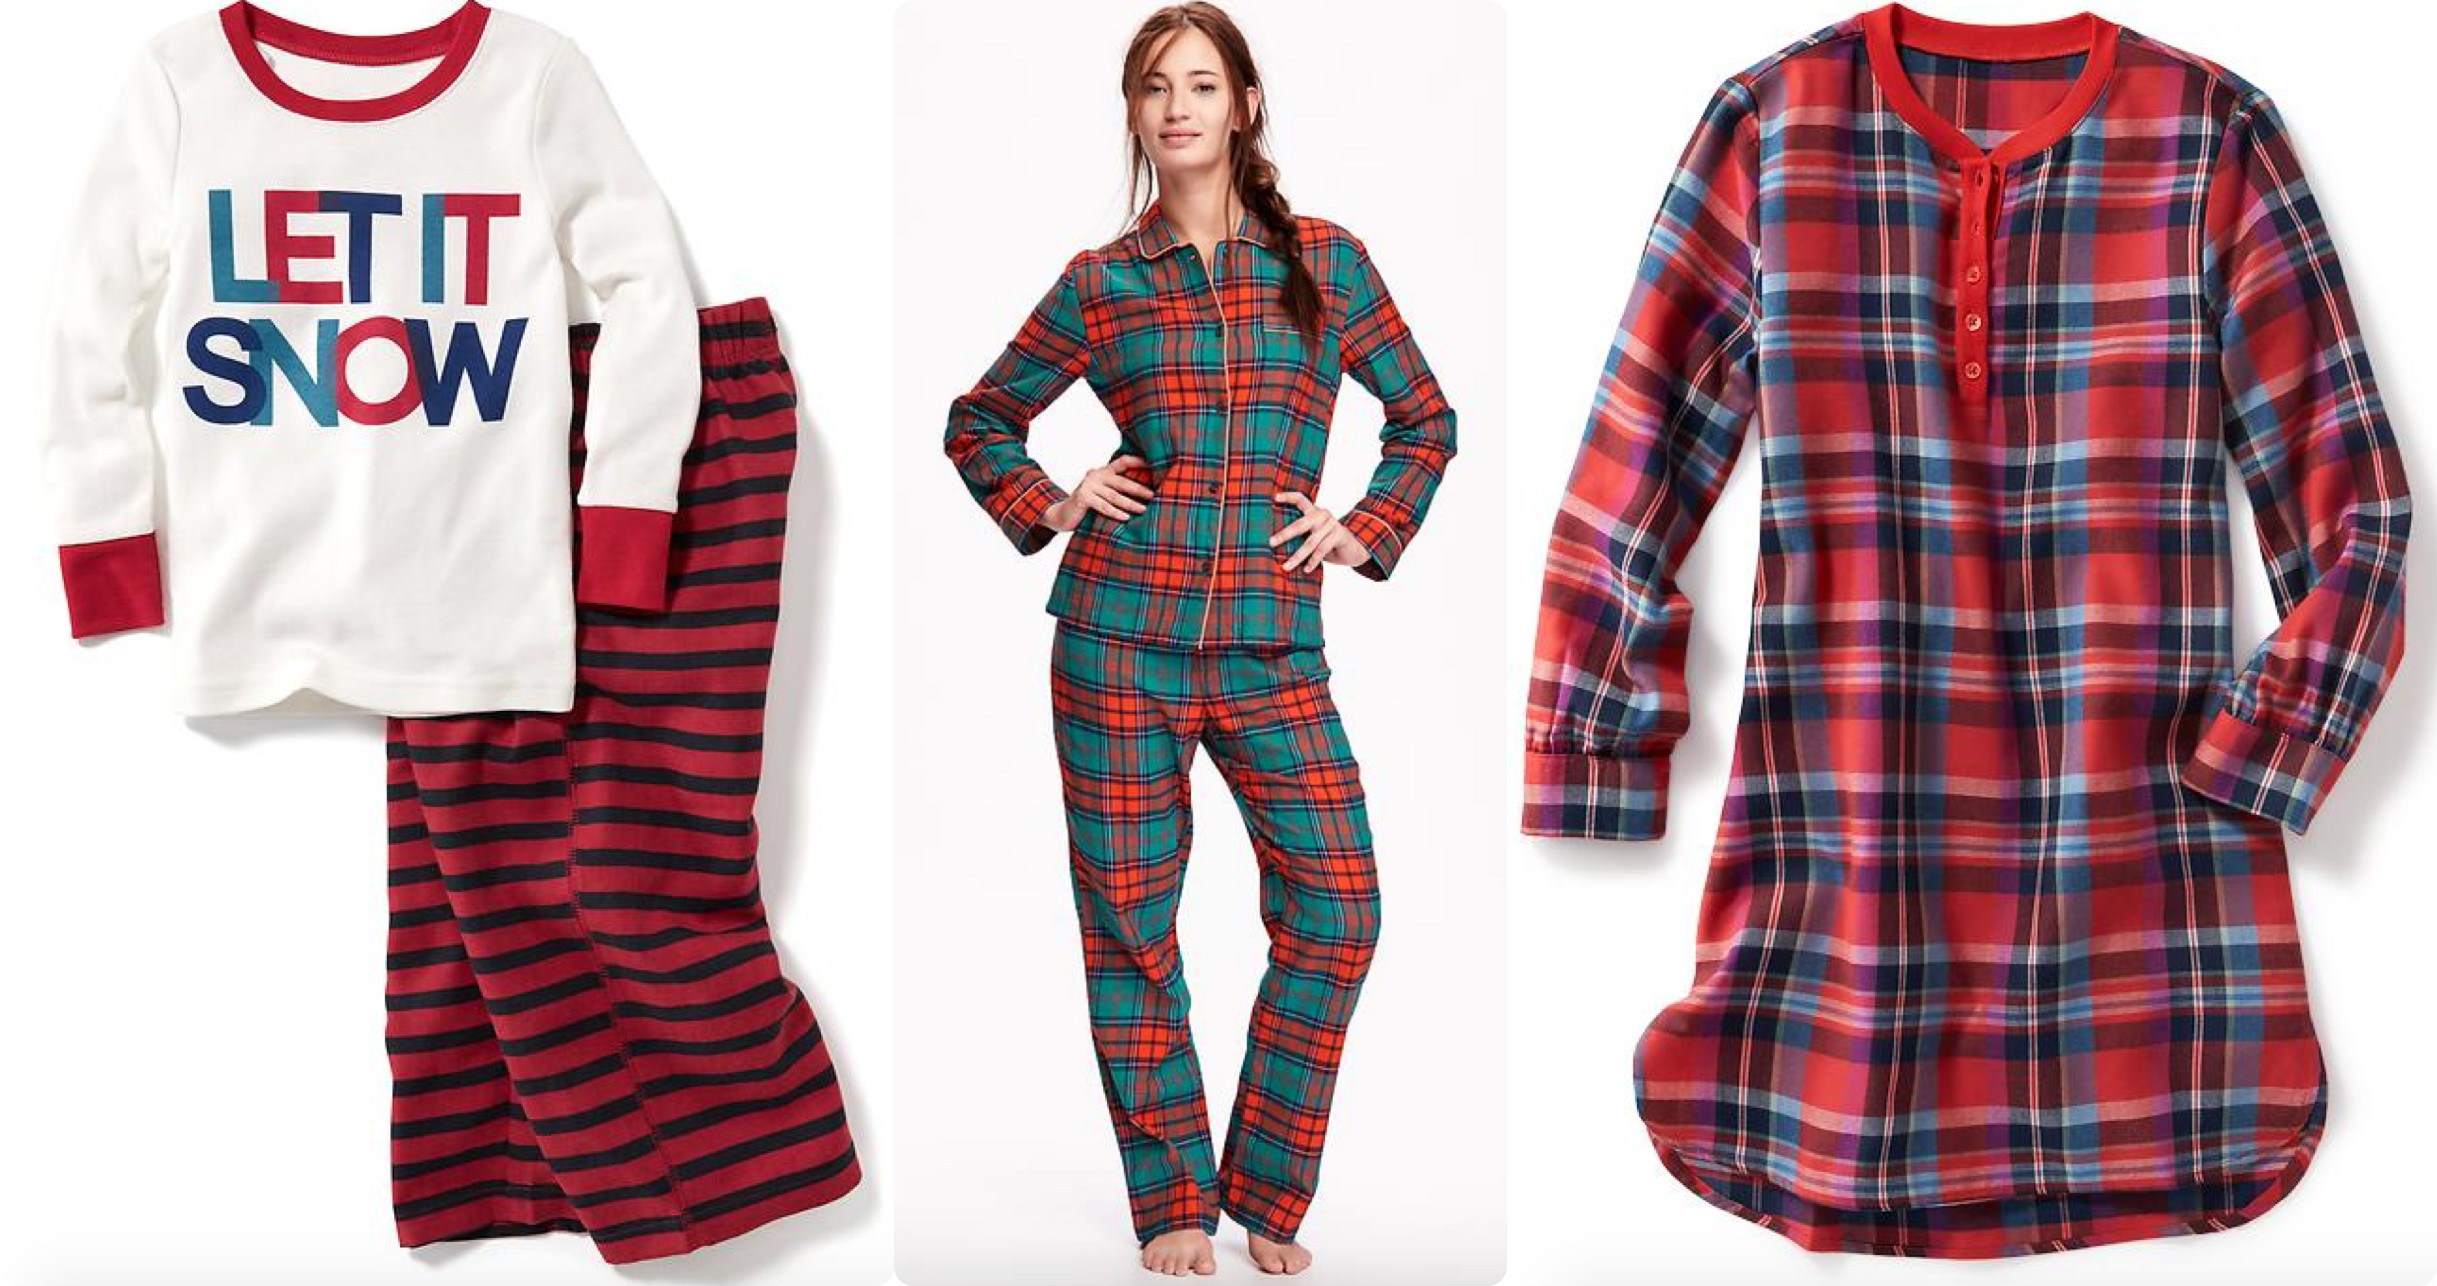 Old Navy: 50% Off Sleepwear for the Family - Hip2Save